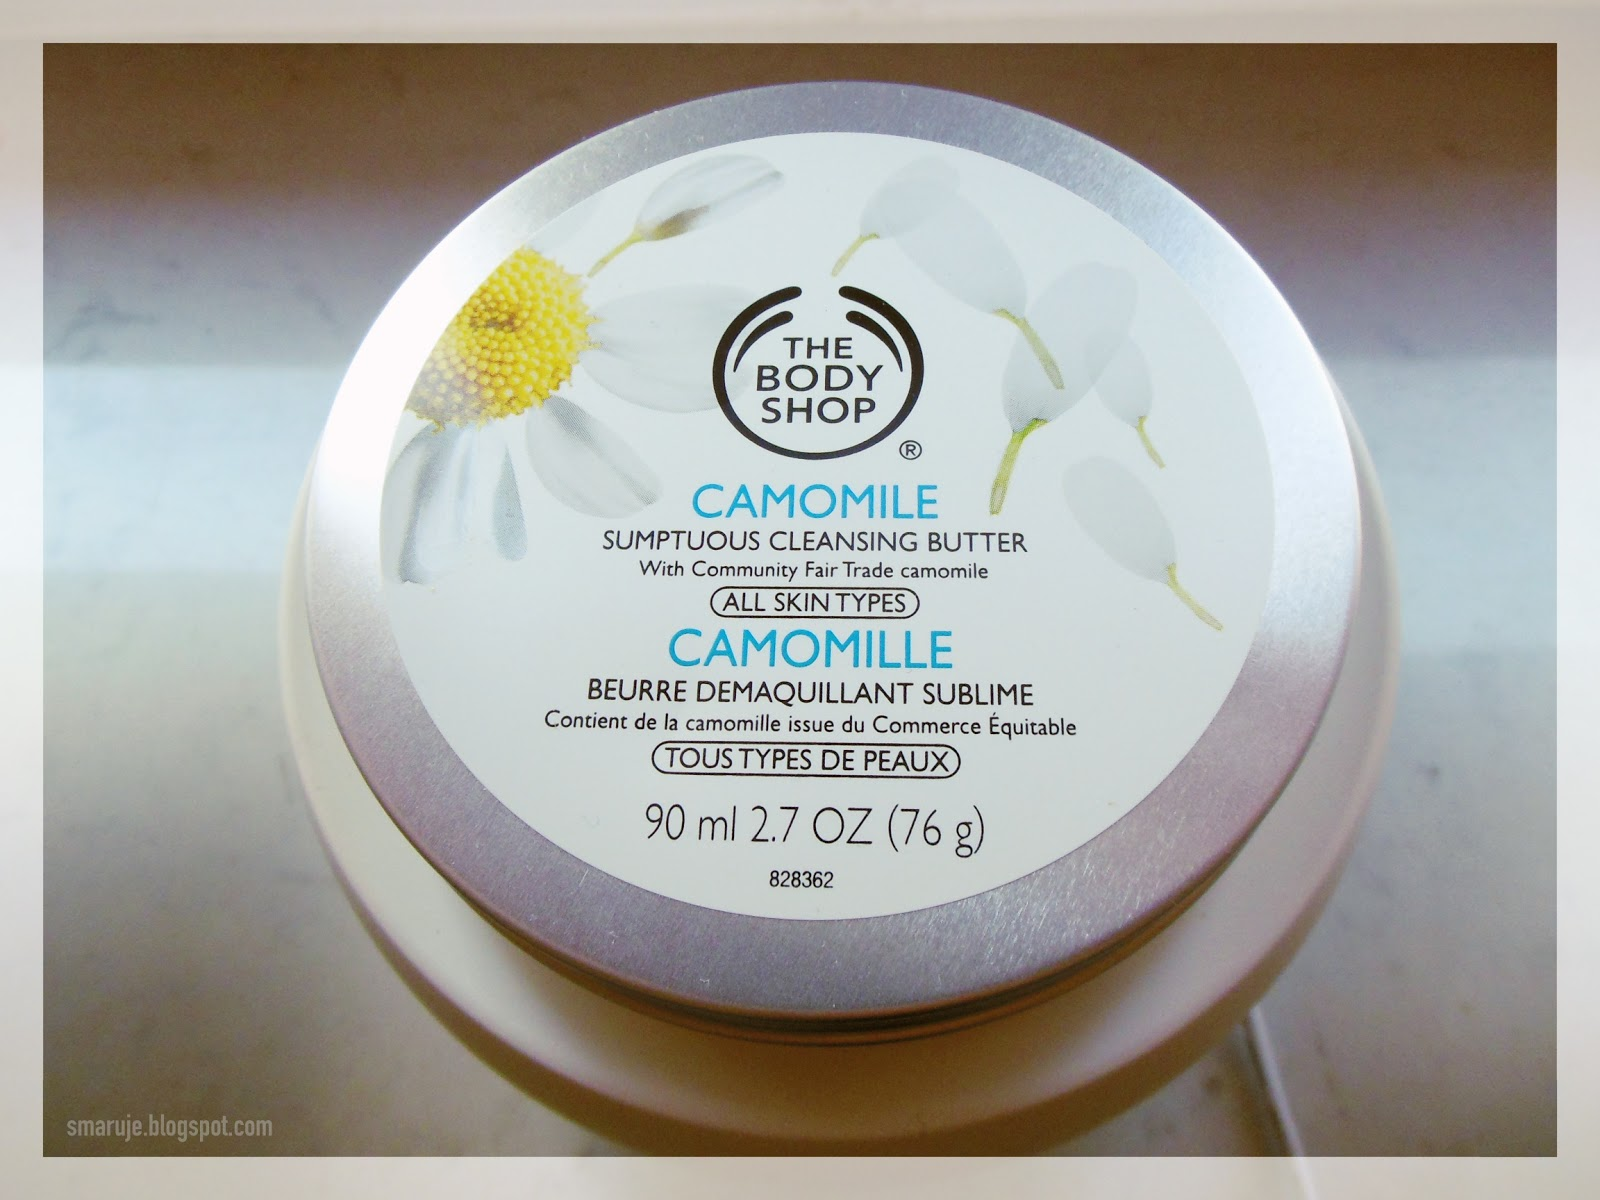 Demakijaż inaczej: The Body Shop – Camomile Sumptuous Cleansing Butter